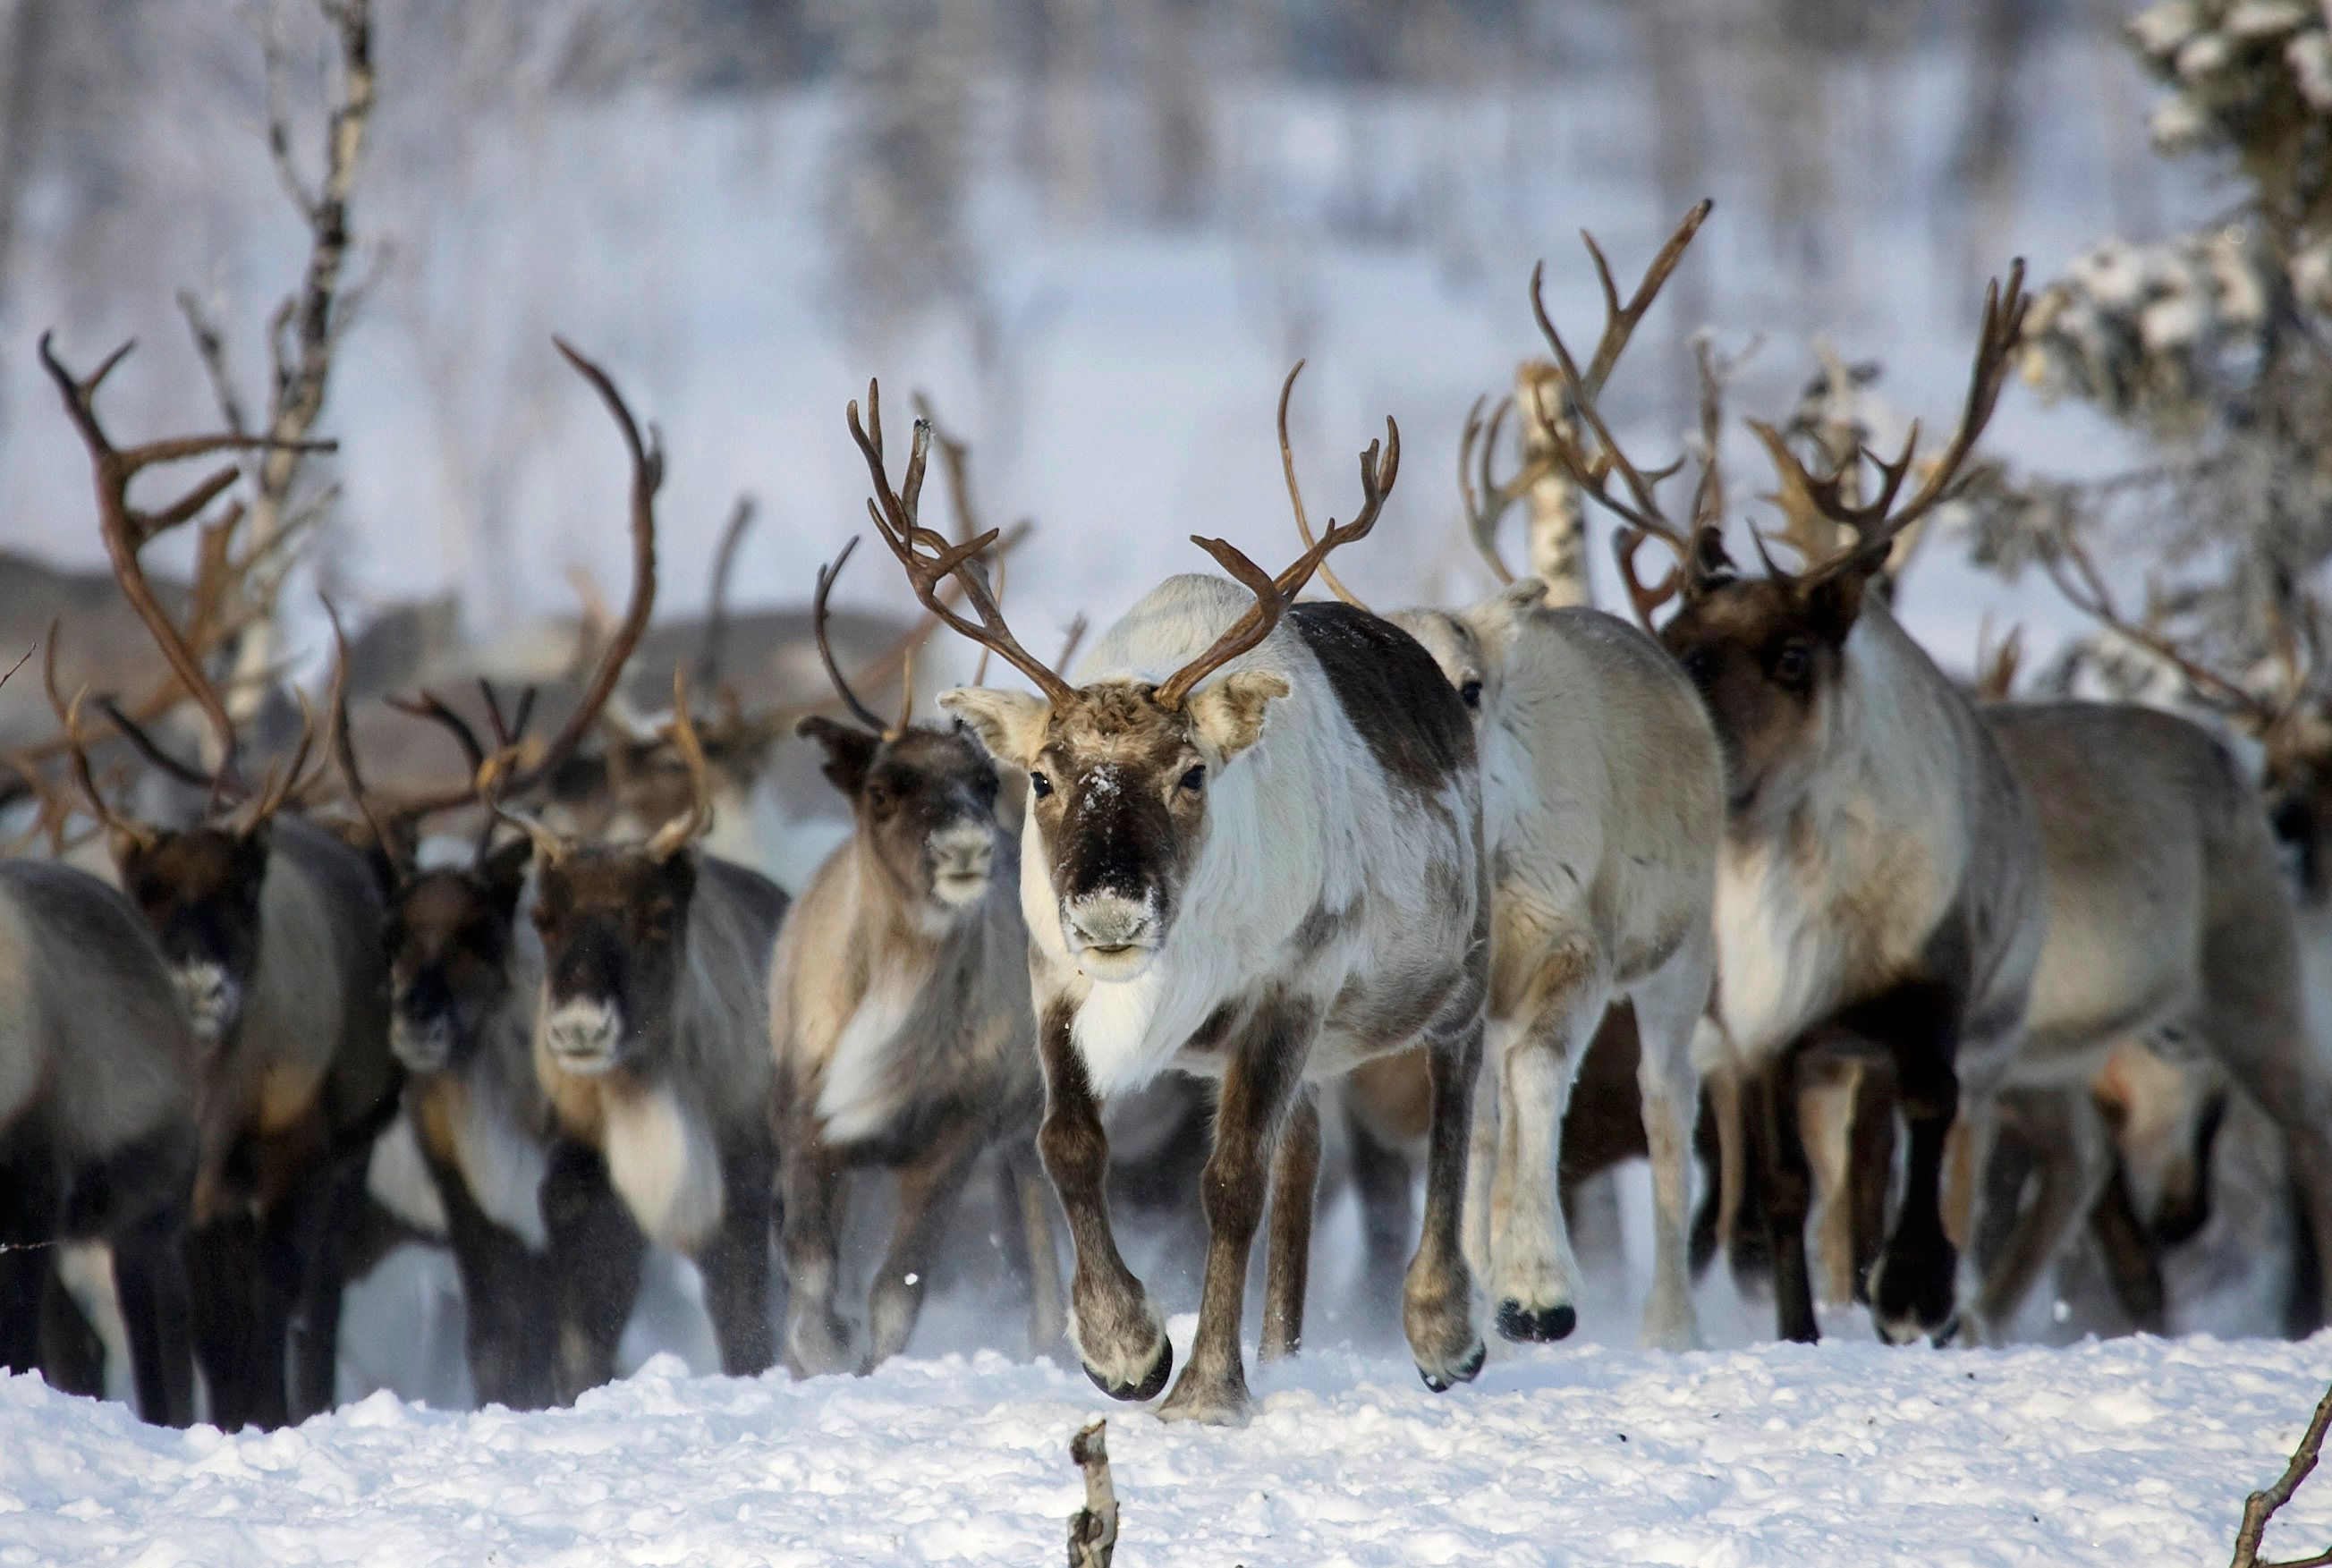 80,000 Reindeer Have Starved To Death In Siberia Because Of Melting Sea